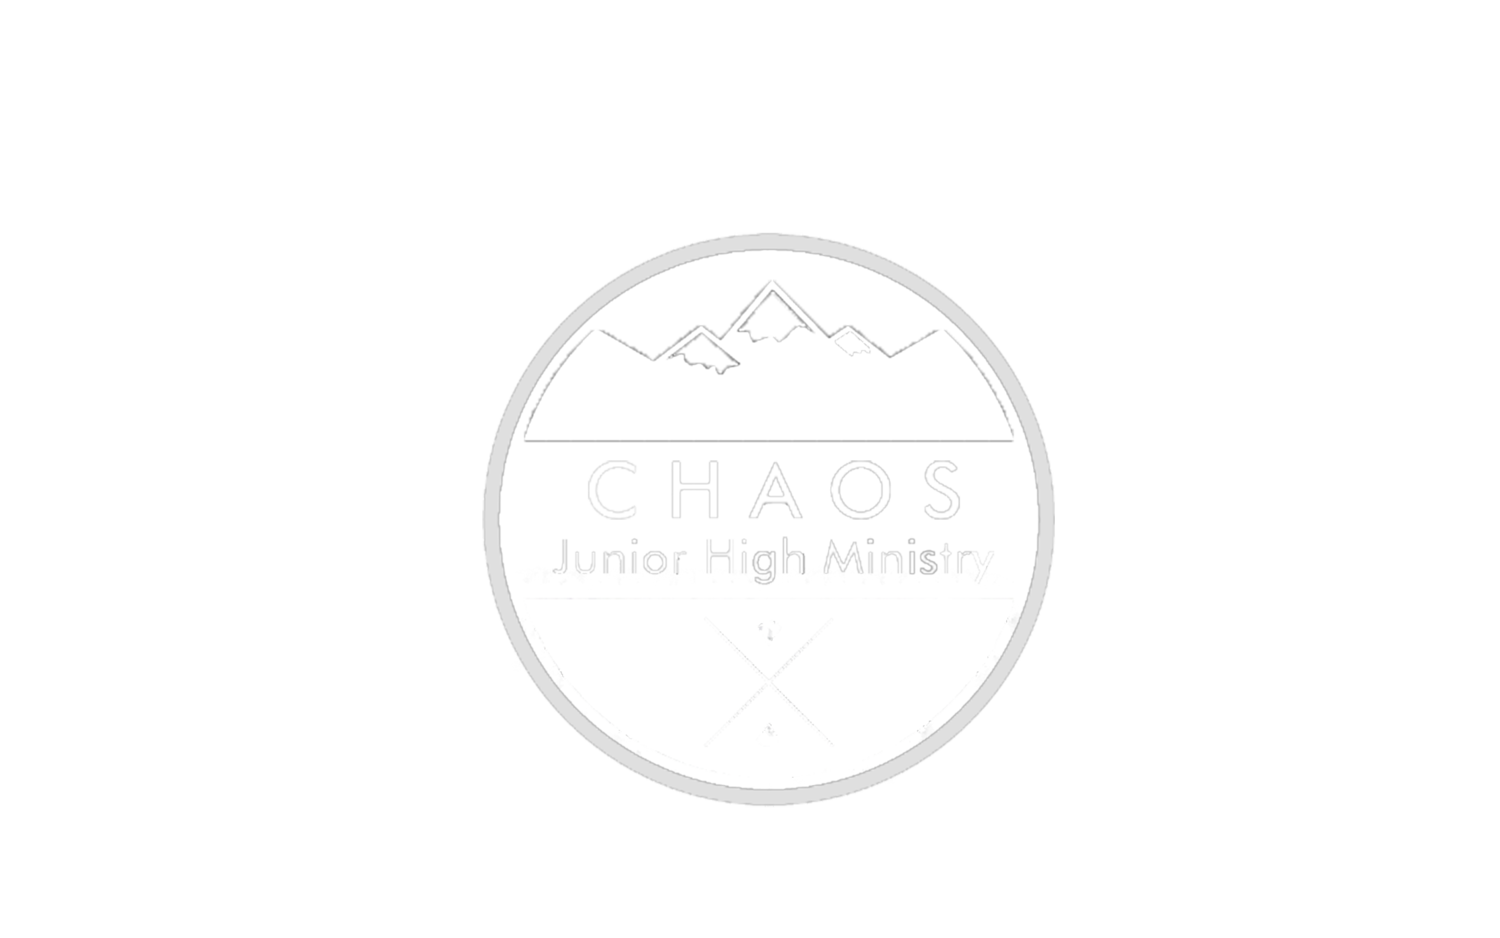 Chaos Junior High Ministry